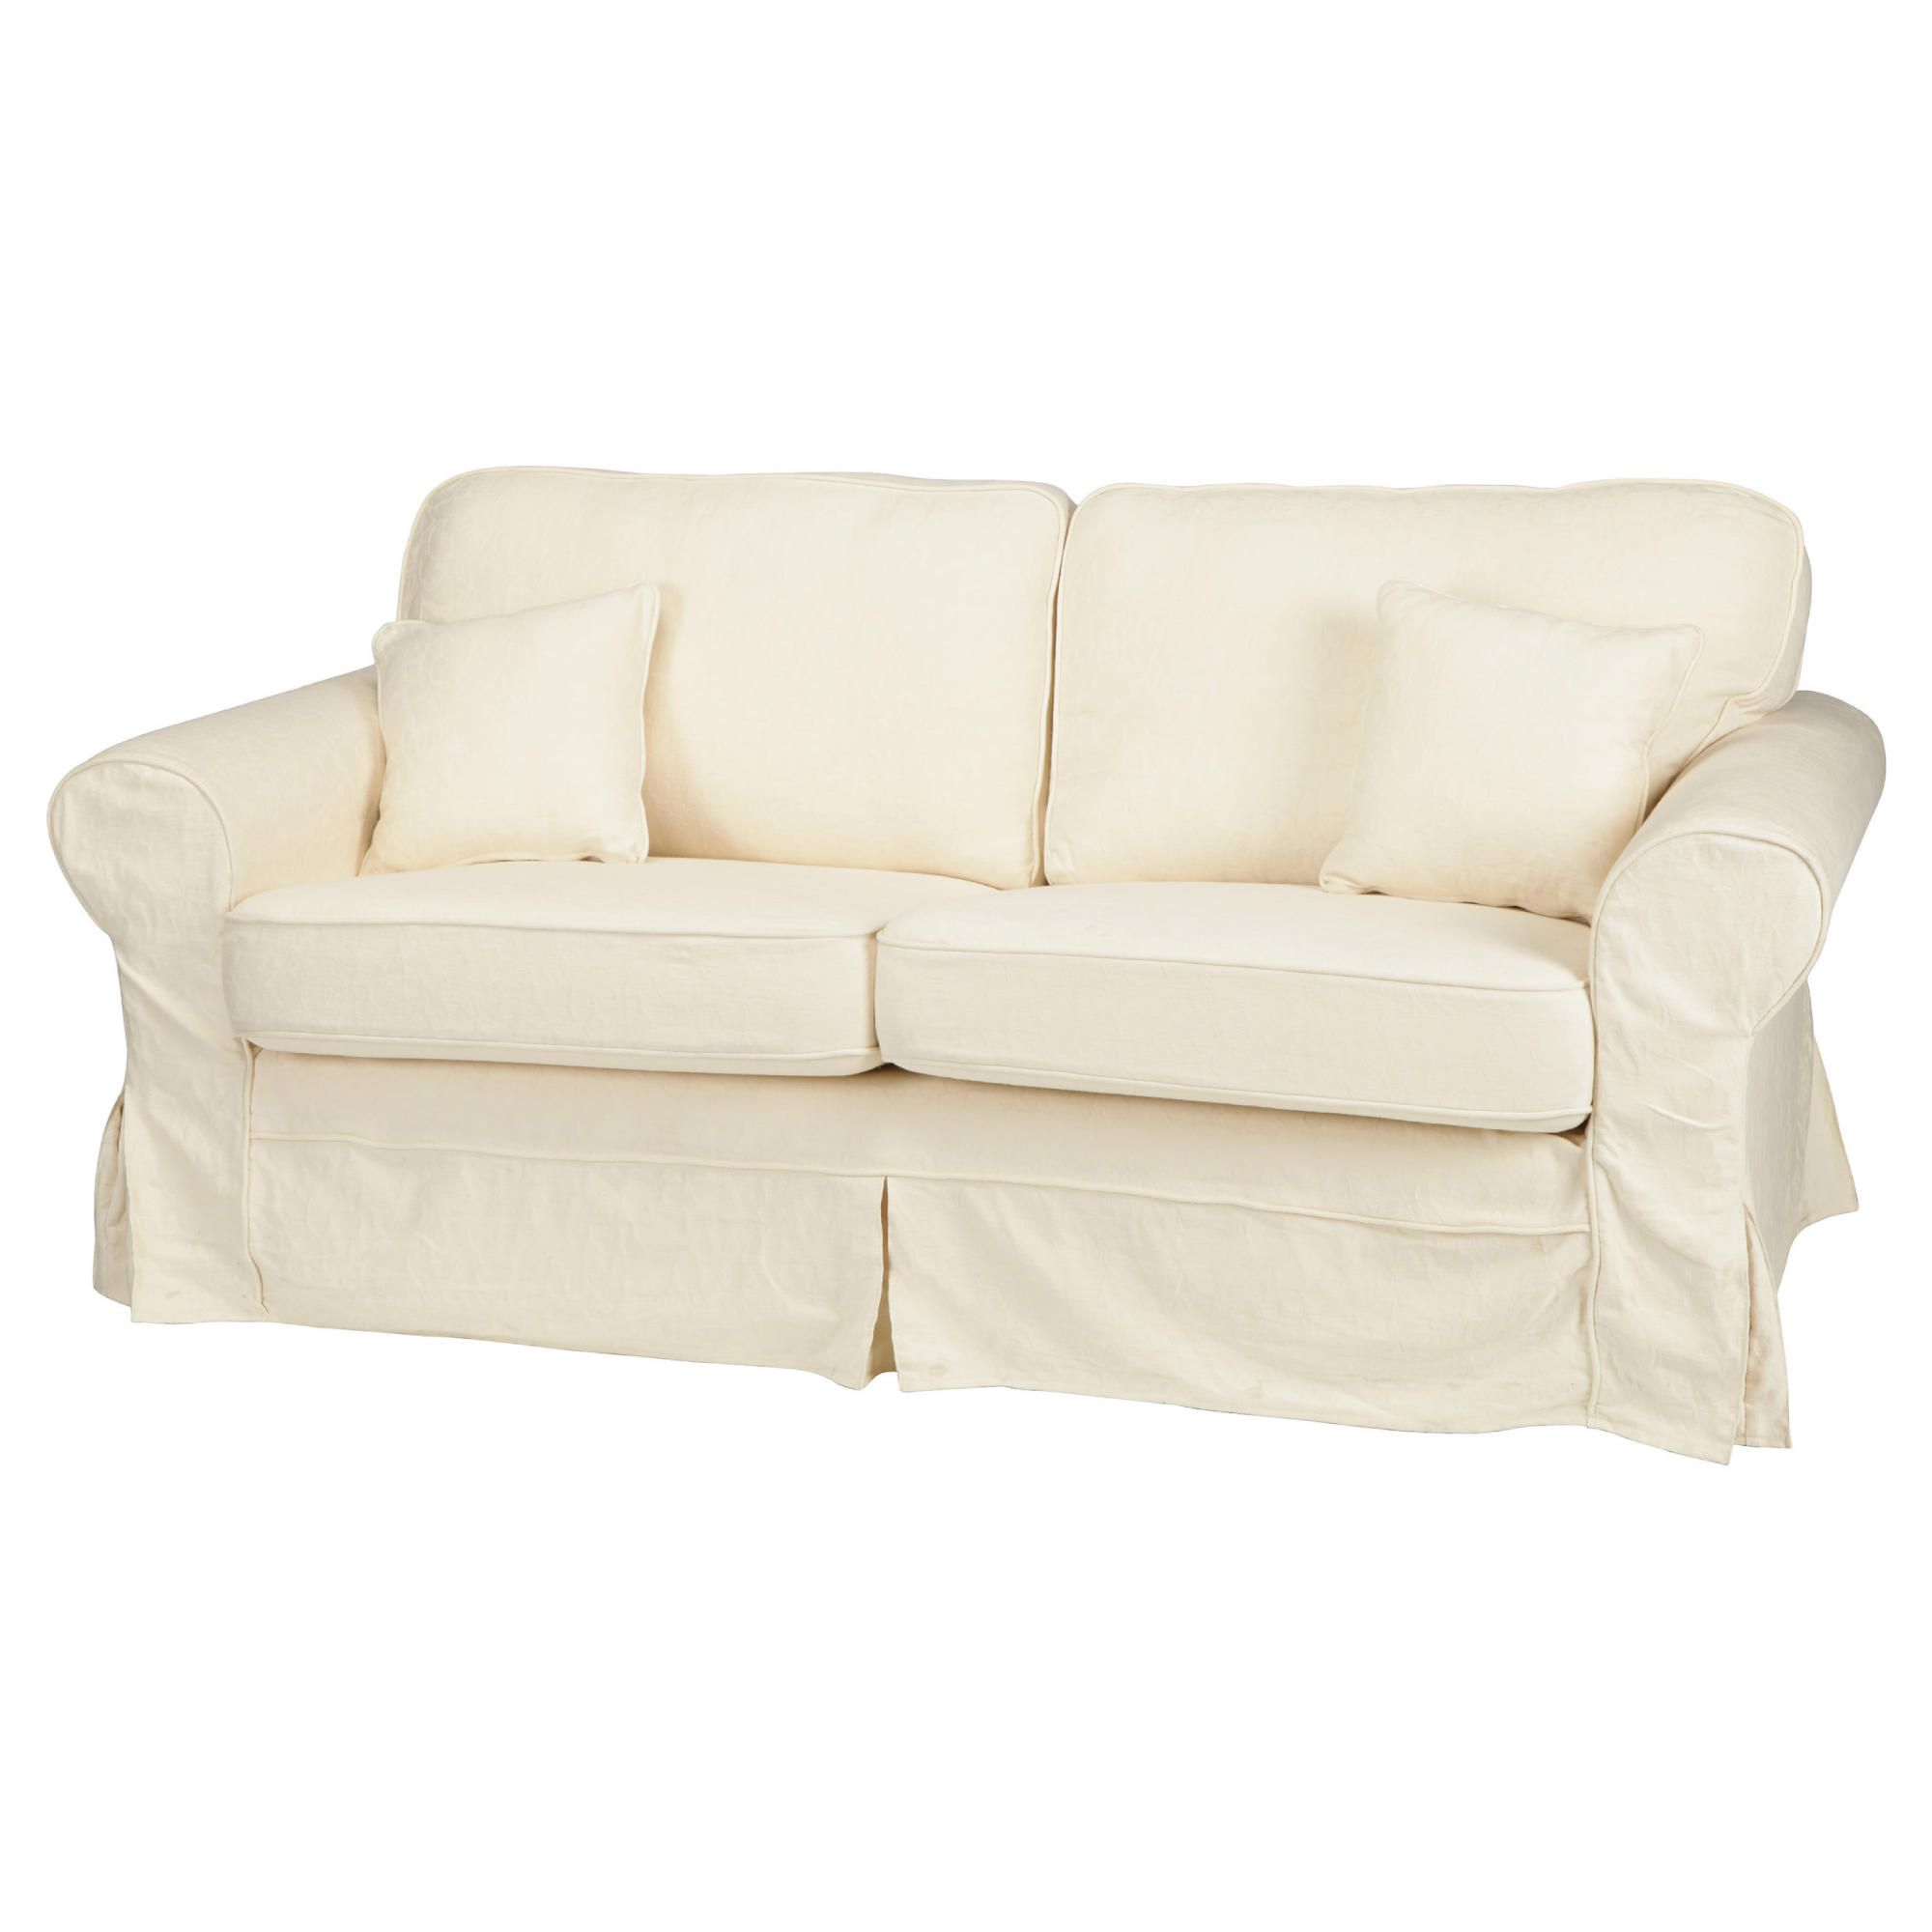 Small cream sofa best 25 cream sofa design ideas on for Small cream sofa